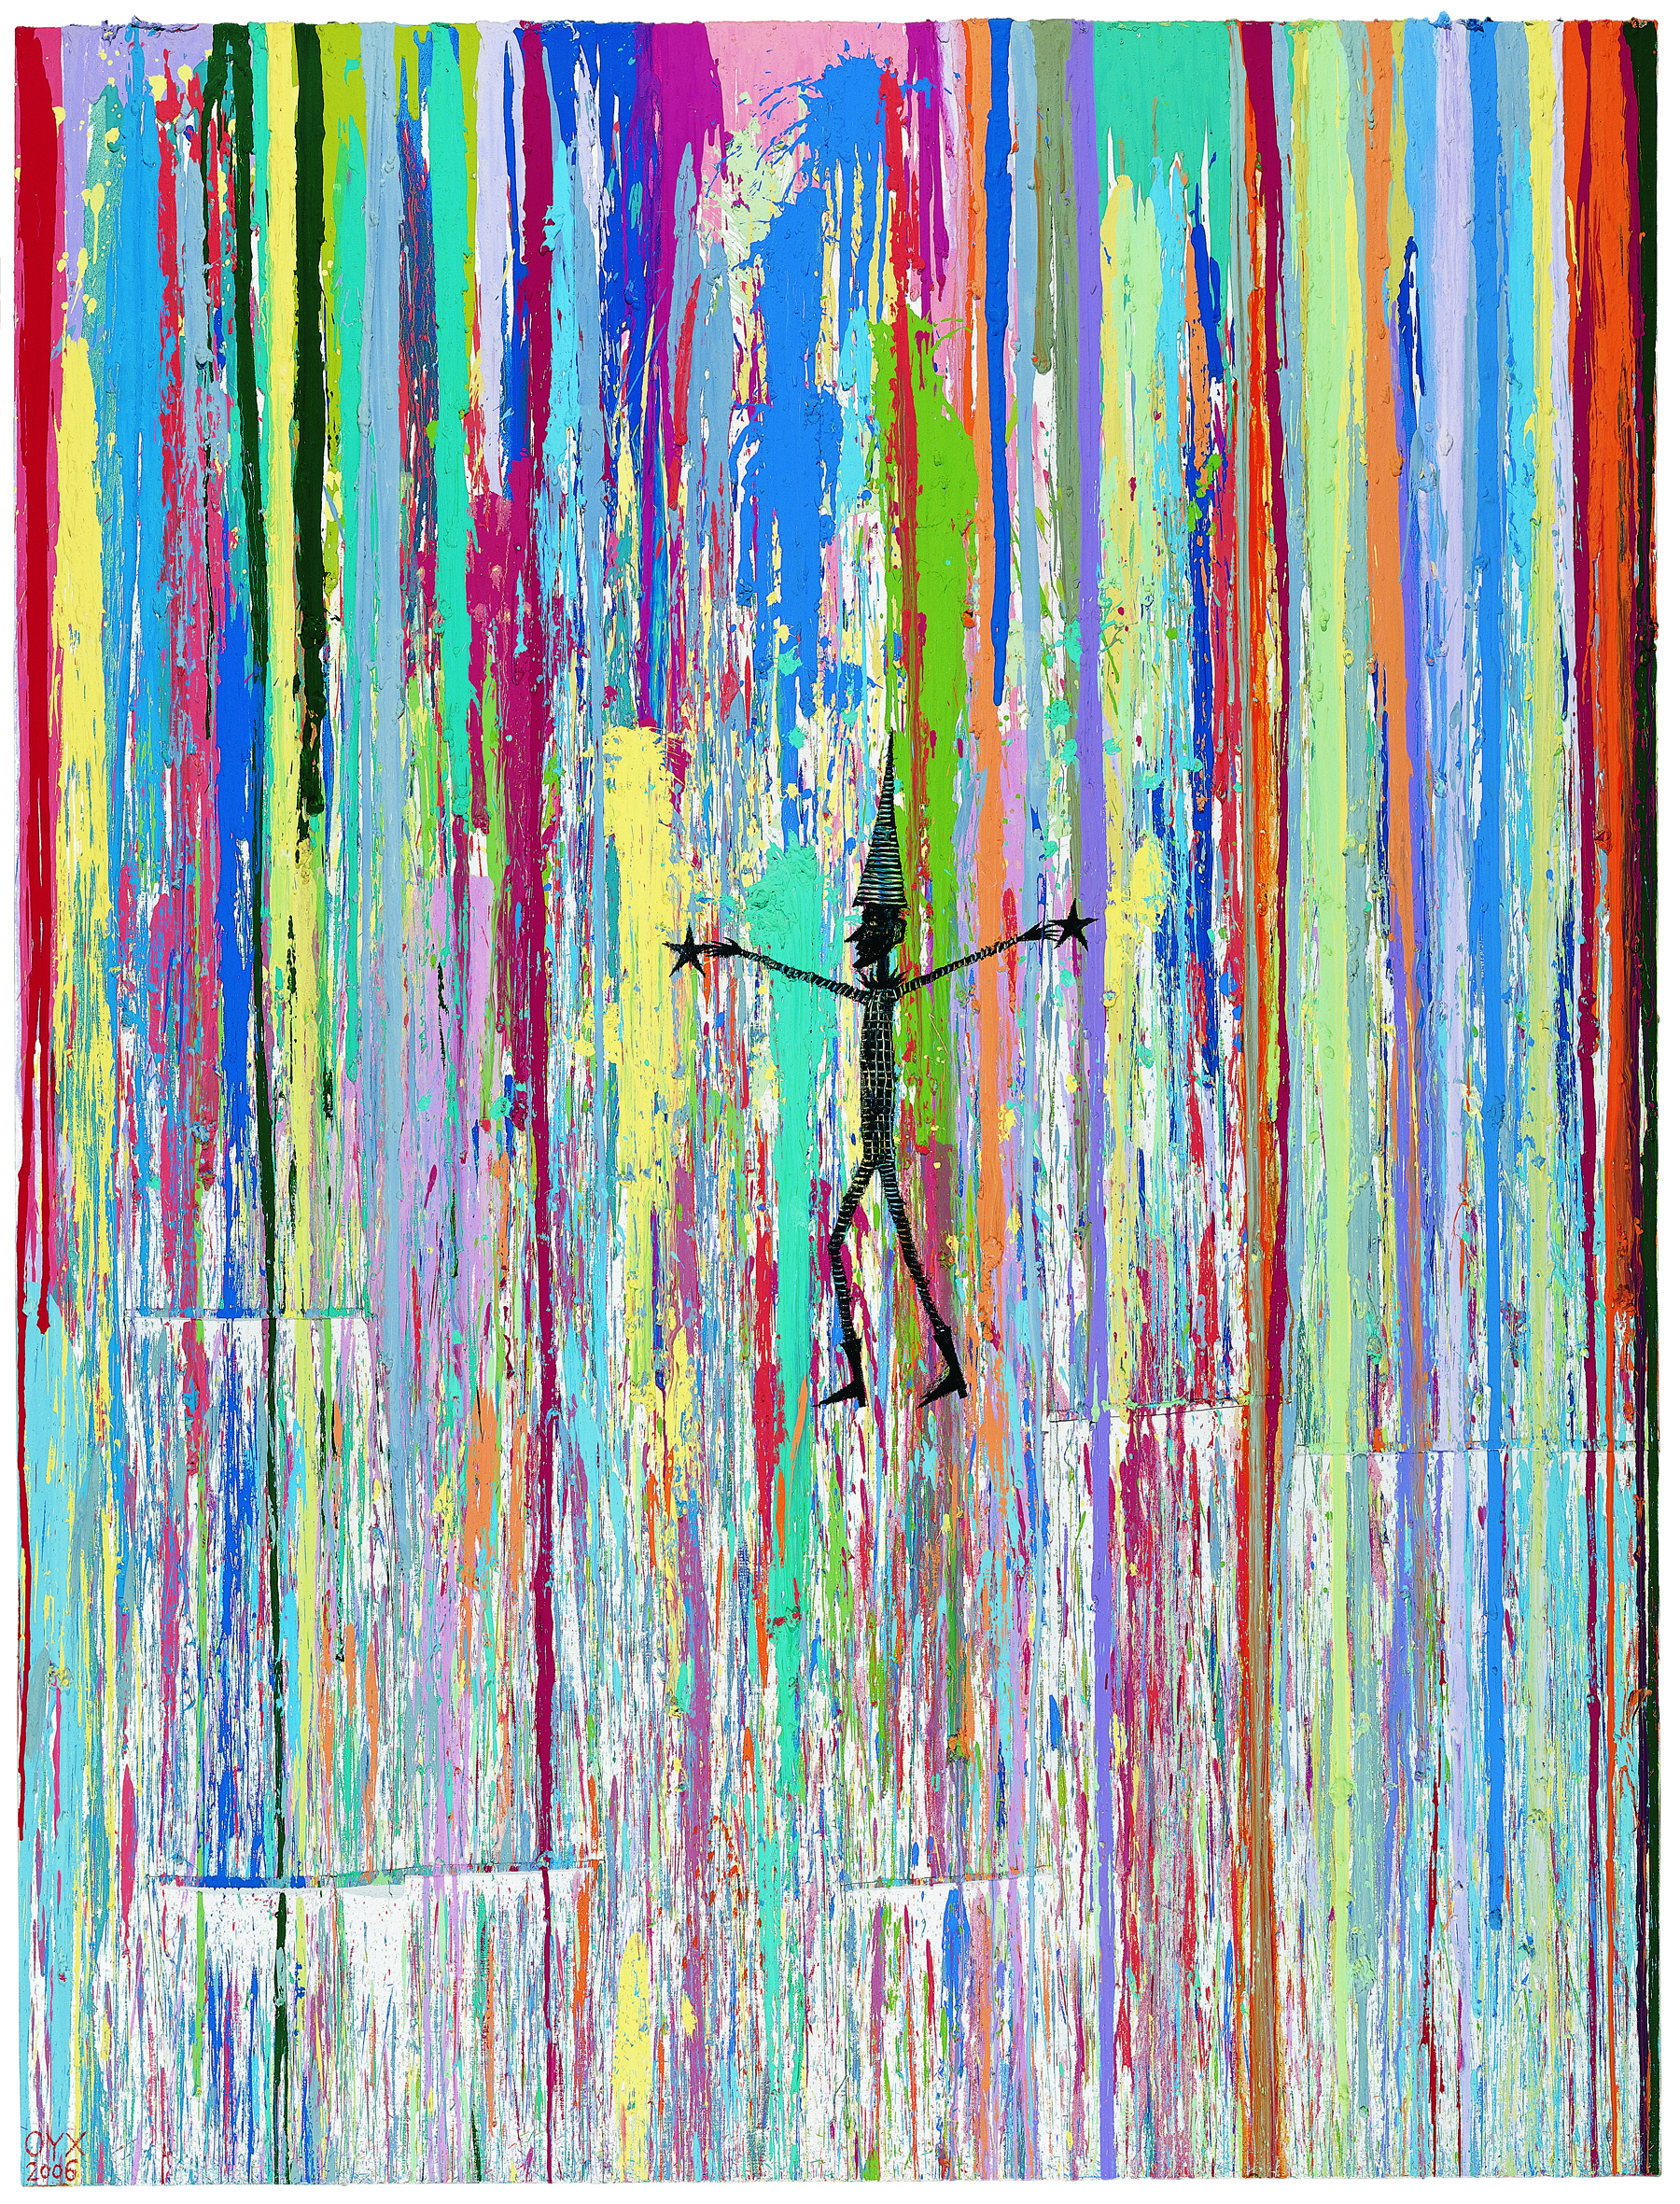 Ouyang Chun, Clown, Color splash on canvas, 270 x 205cm, 2007